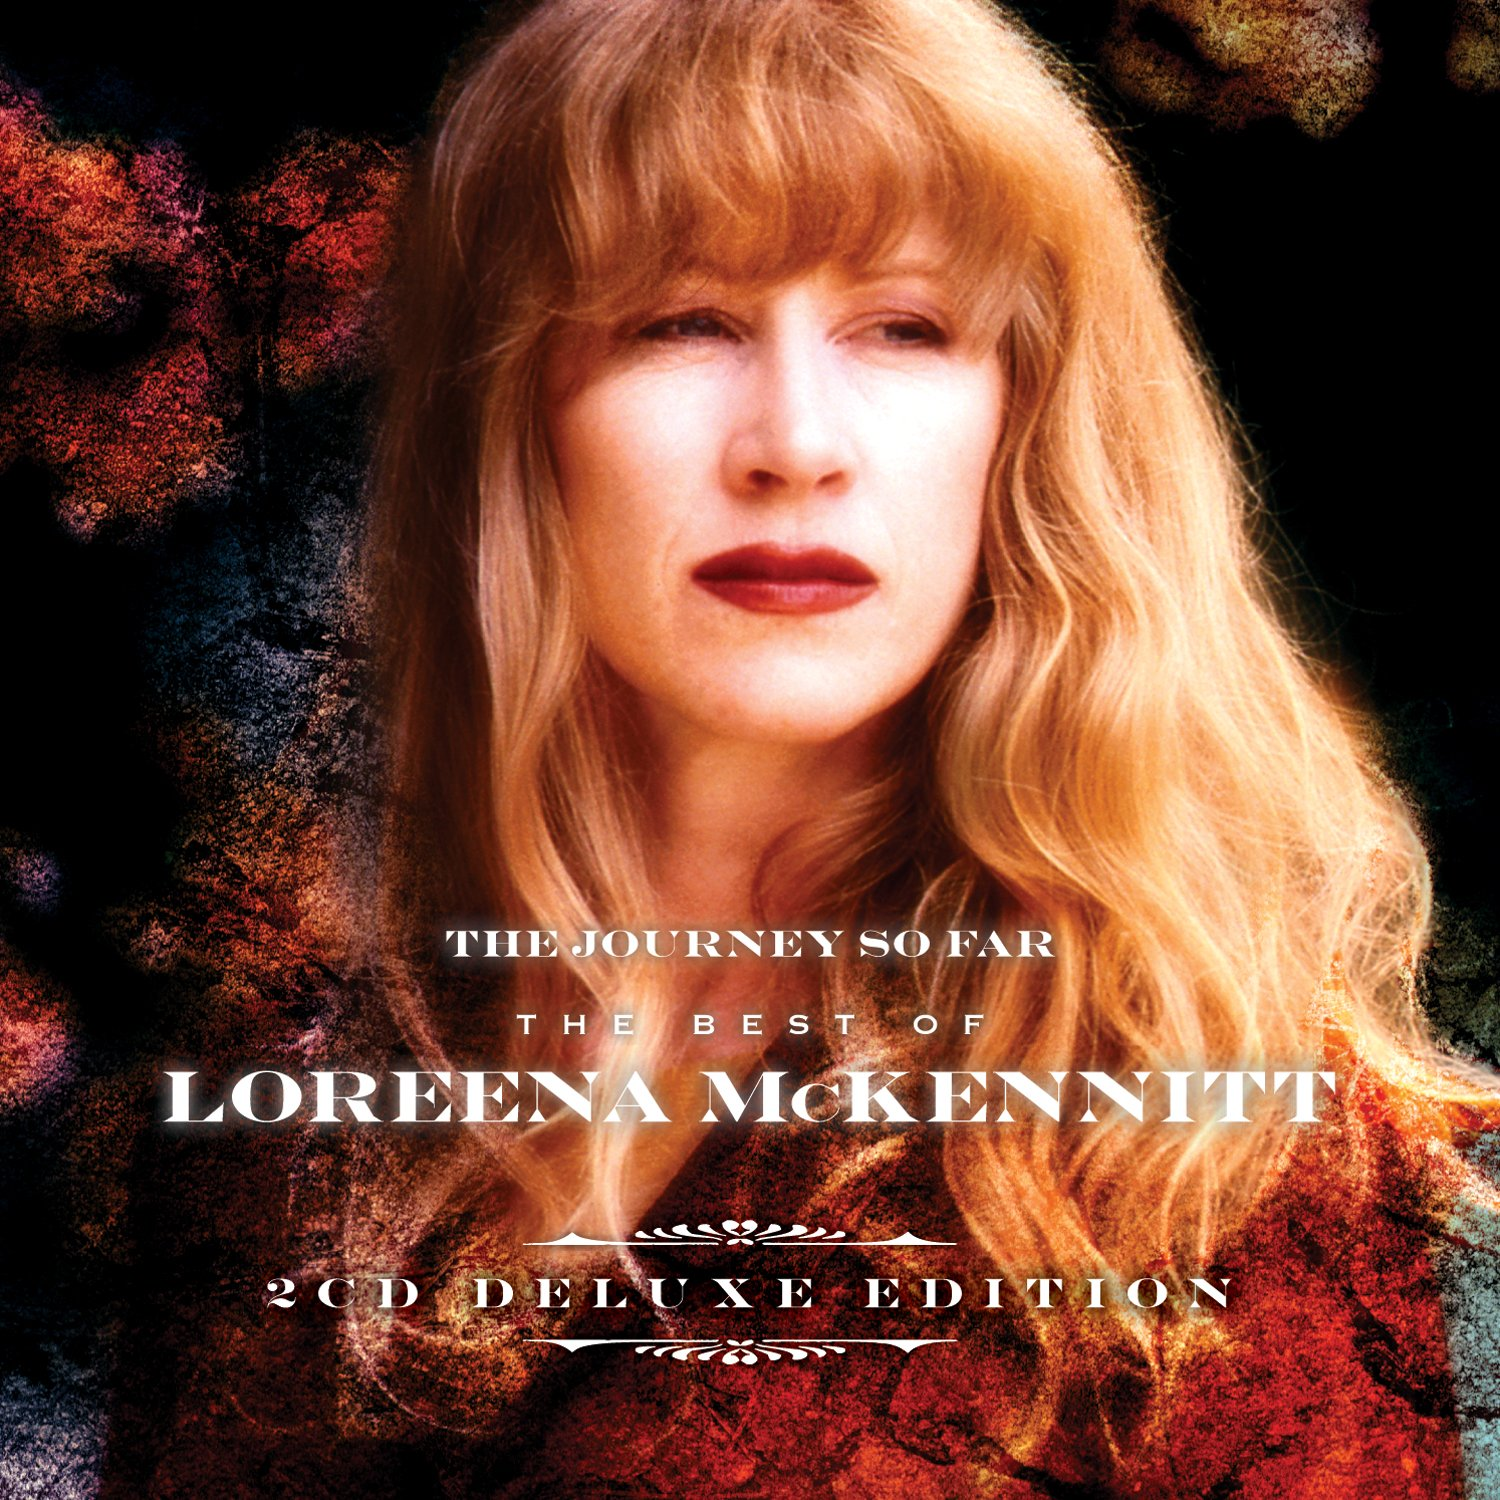 The Journey So Far The Best Of Loreena McKennitt [2 CD][Deluxe Edition] by Universal